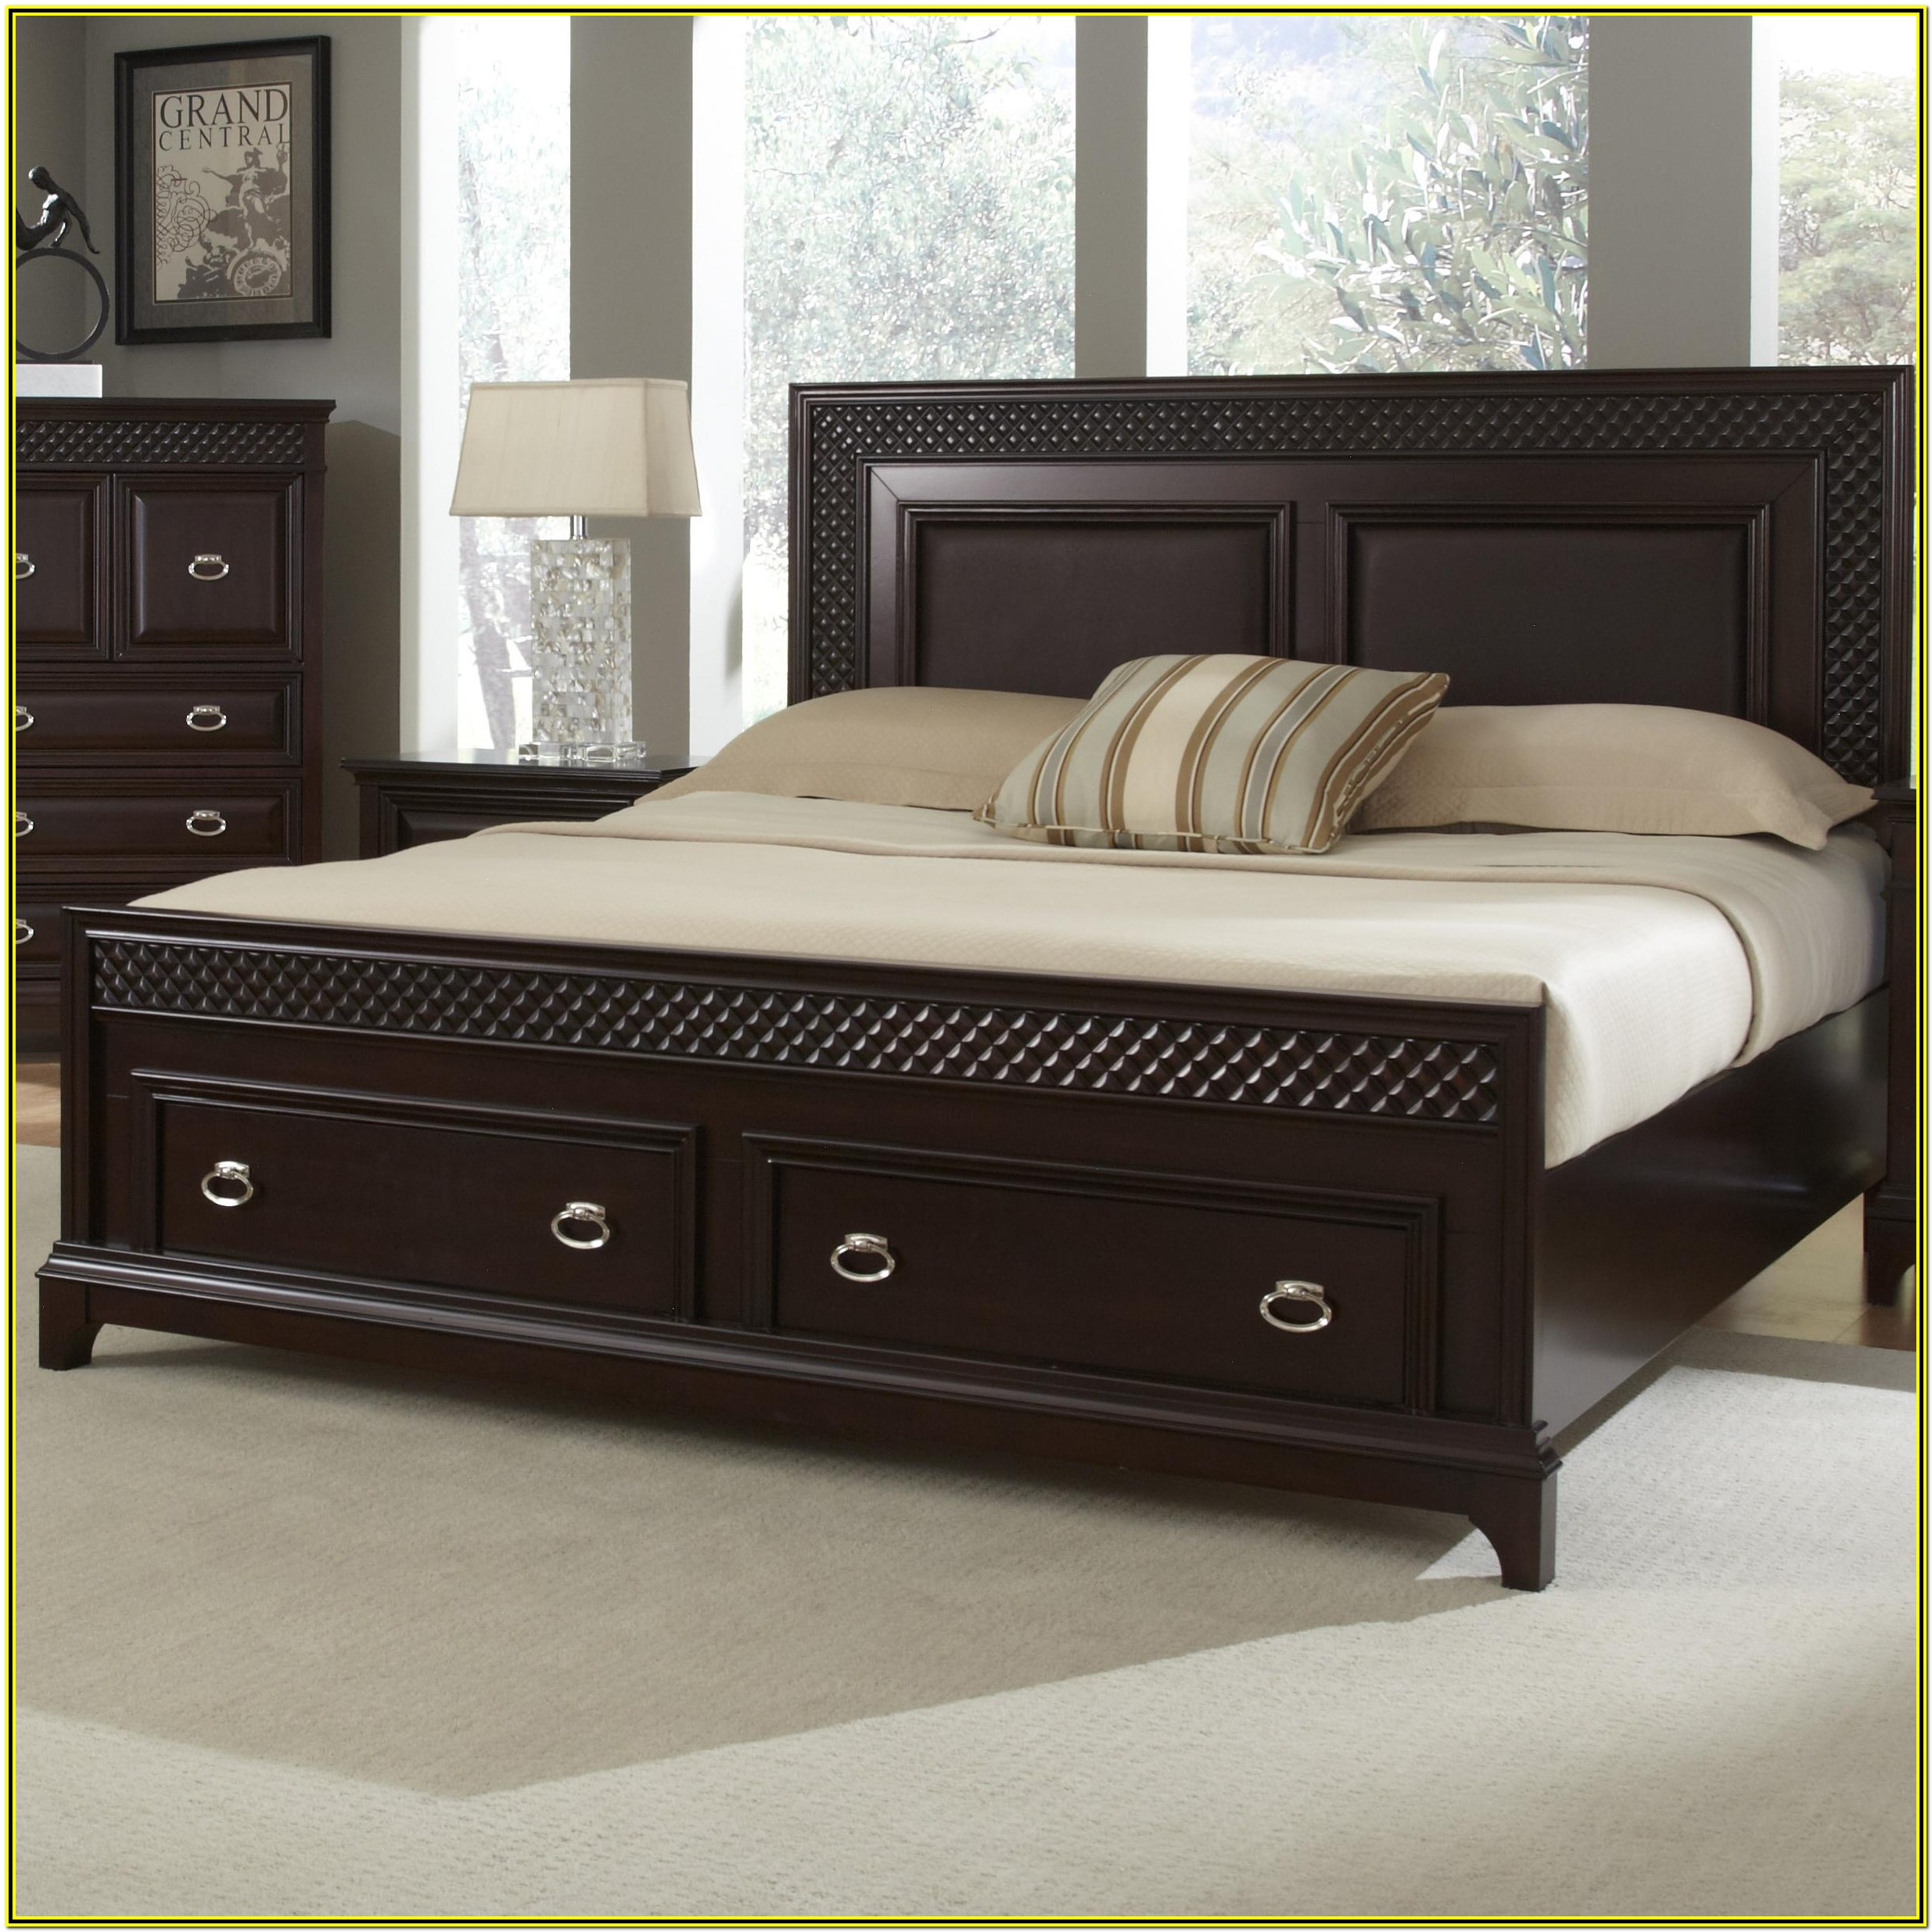 California King Bed Frame With Drawers